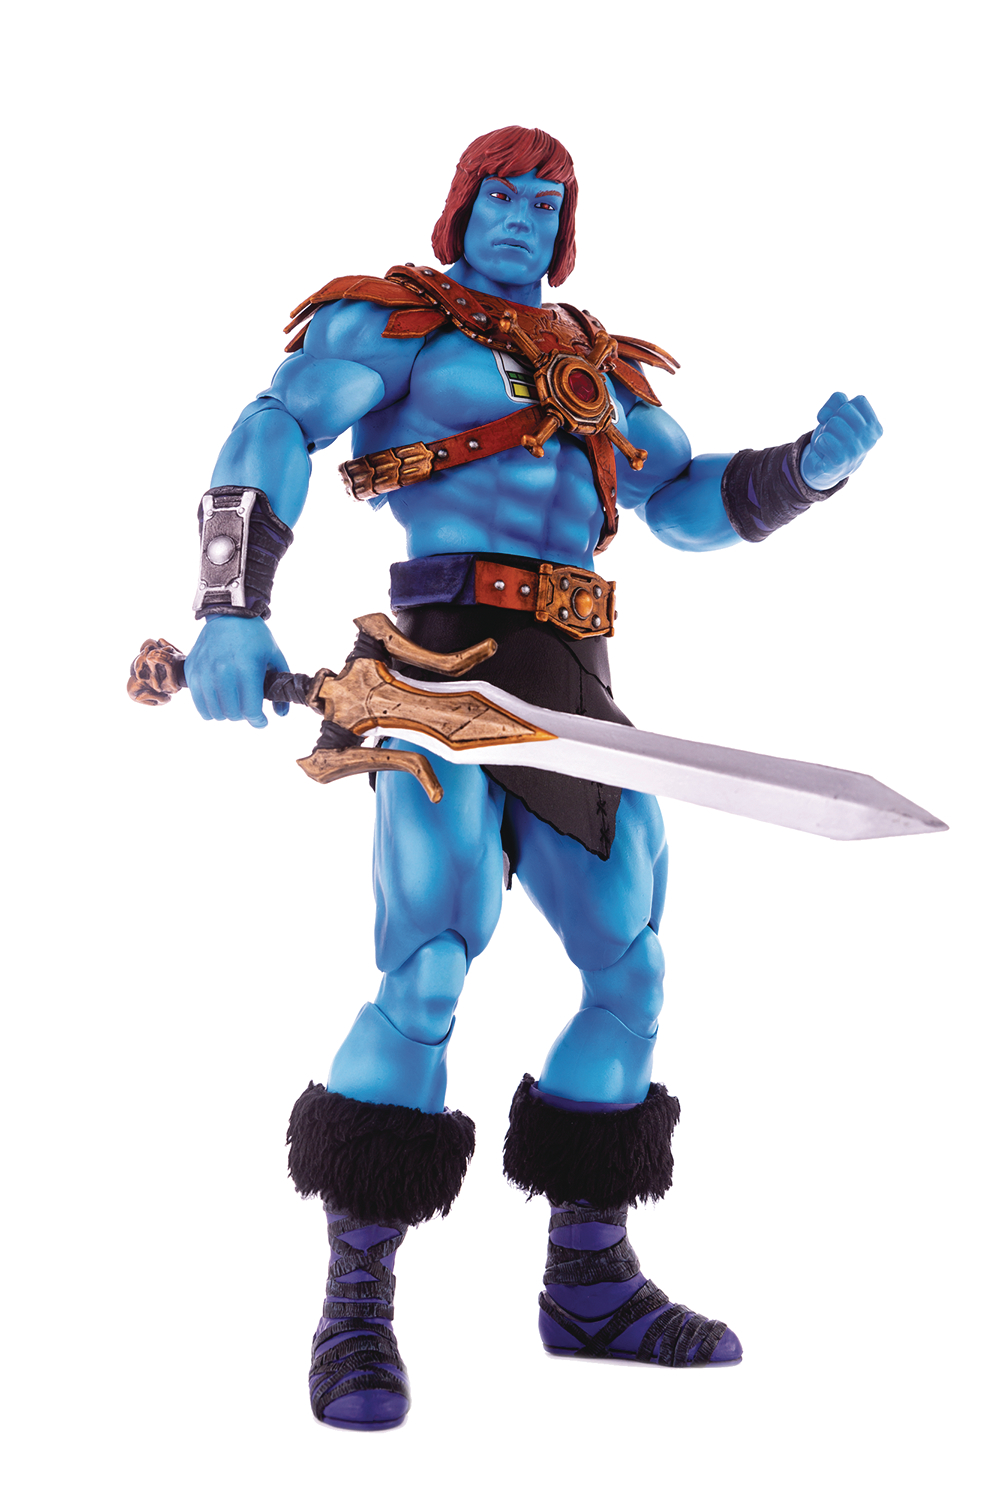 MOTU FAKER PX 1/6 SCALE COLLECTIBLE FIGURE